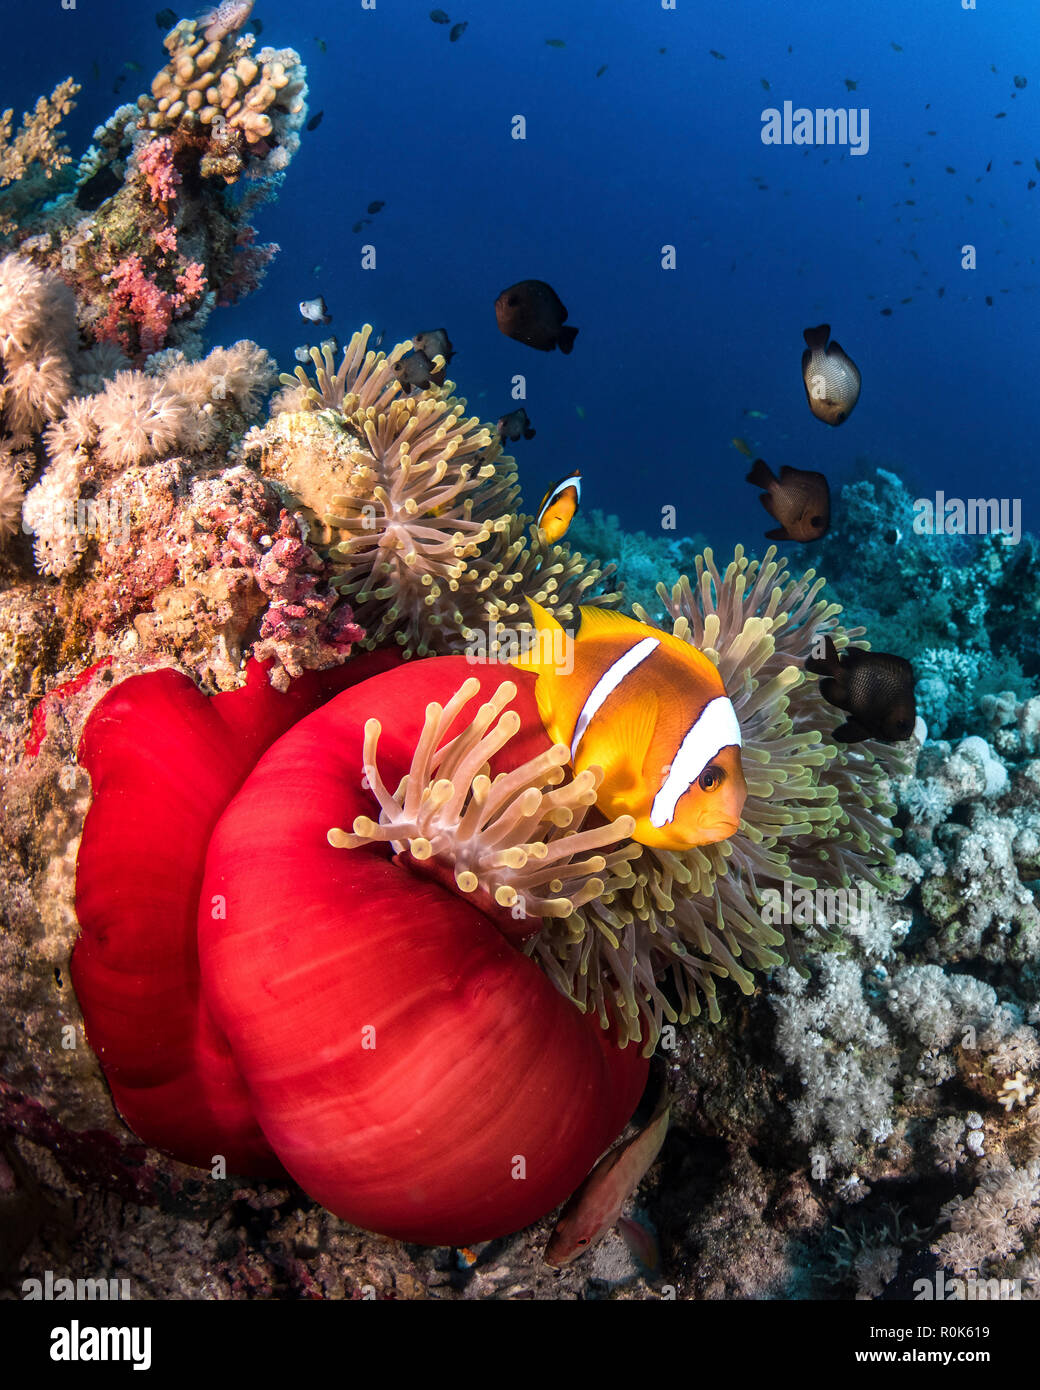 The anemones in the Red Sea have beautiful Red Skirts. - Stock Image